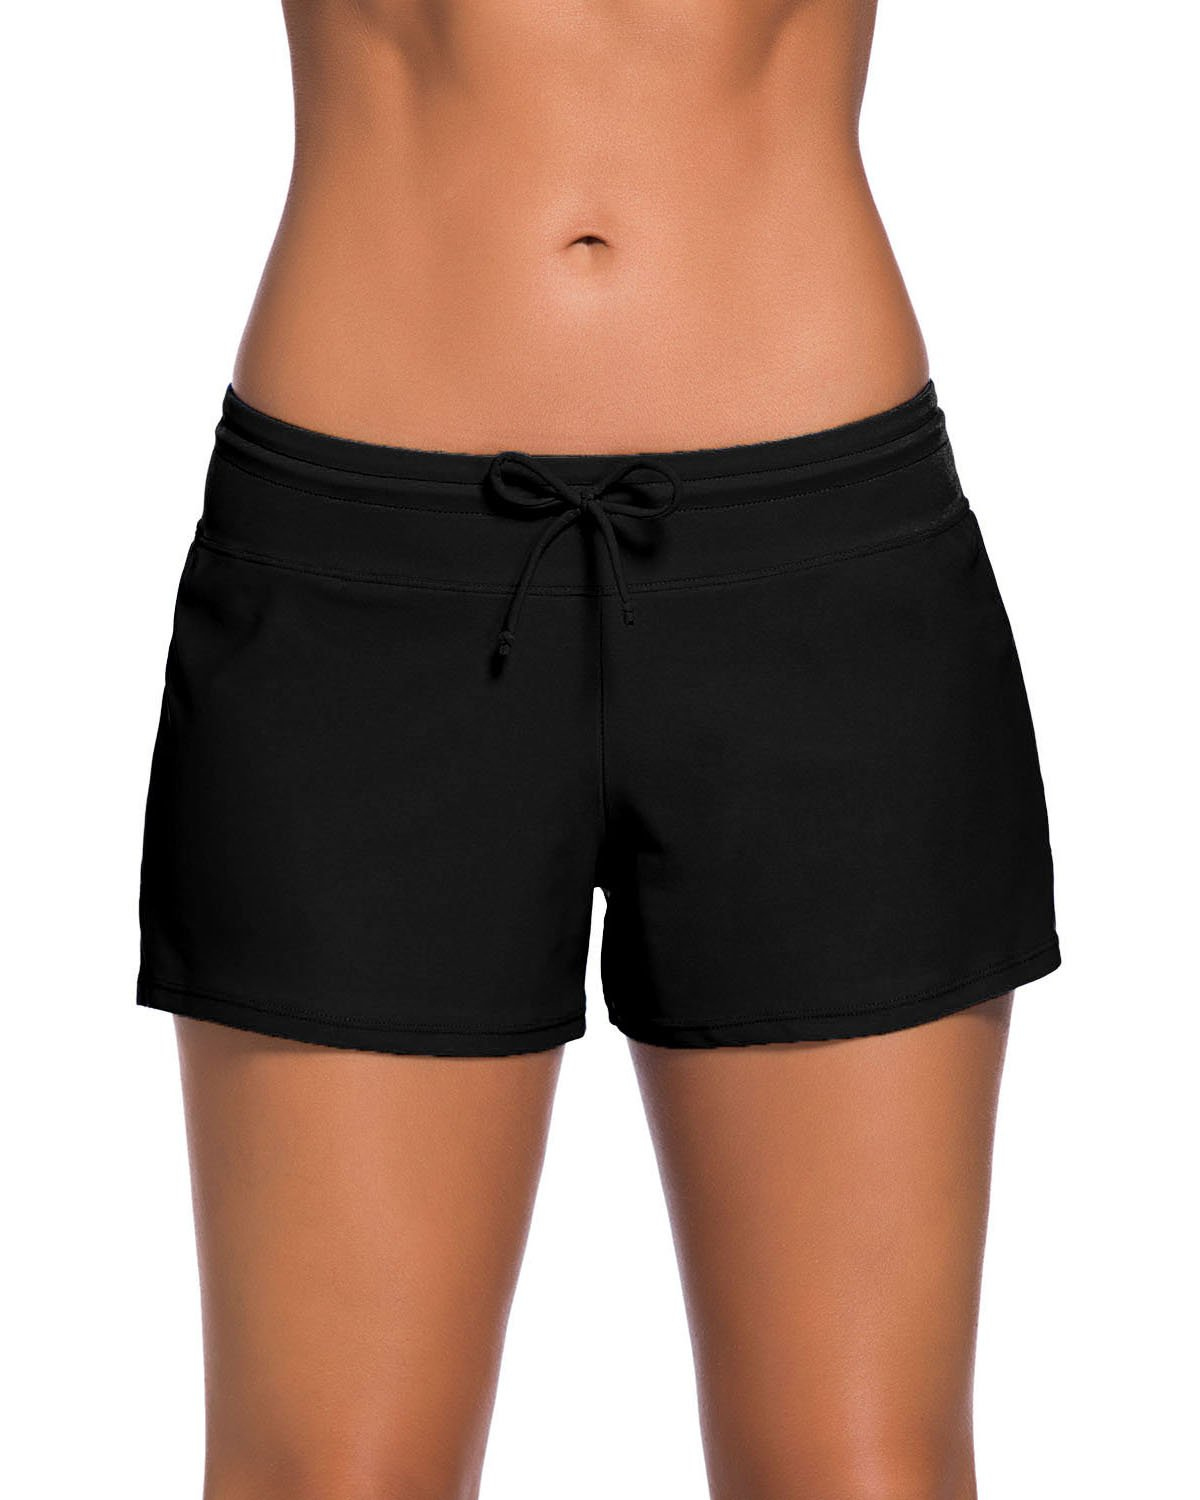 ChinFun Women's Adjustable Waistband Swimsuit Swim Board Shorts Loose Fit Solid Black Size M